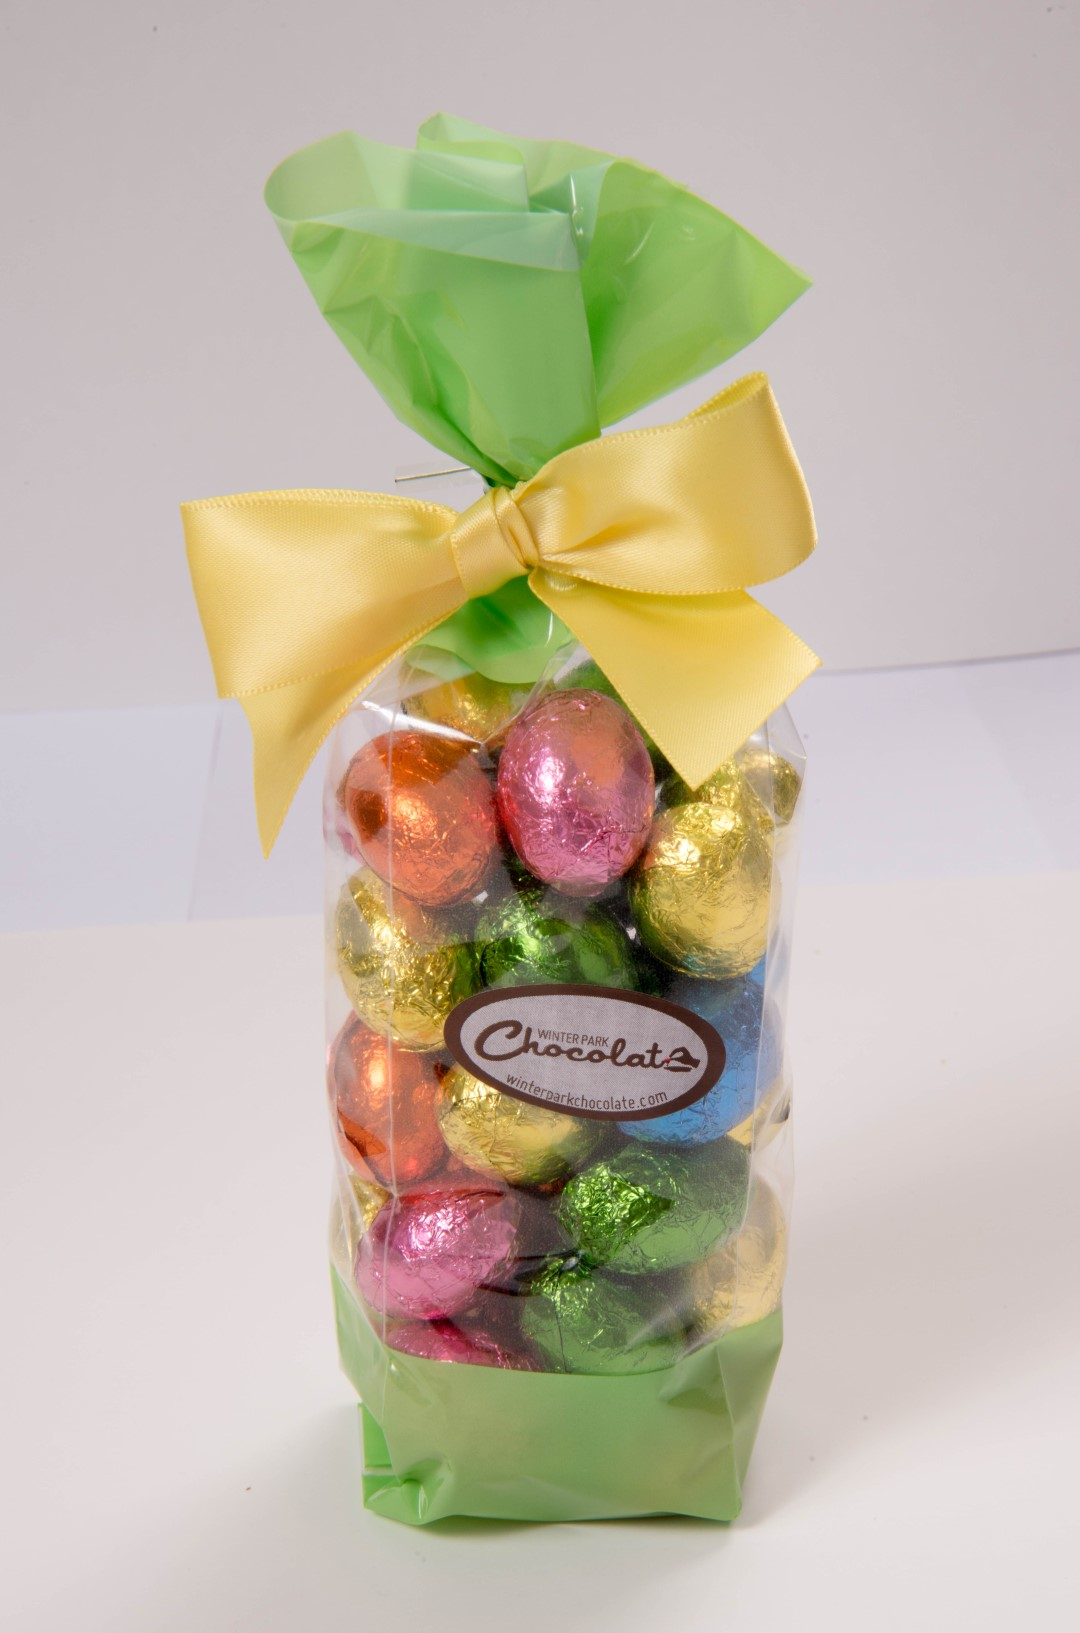 Bag of Chocolate Easter Eggs